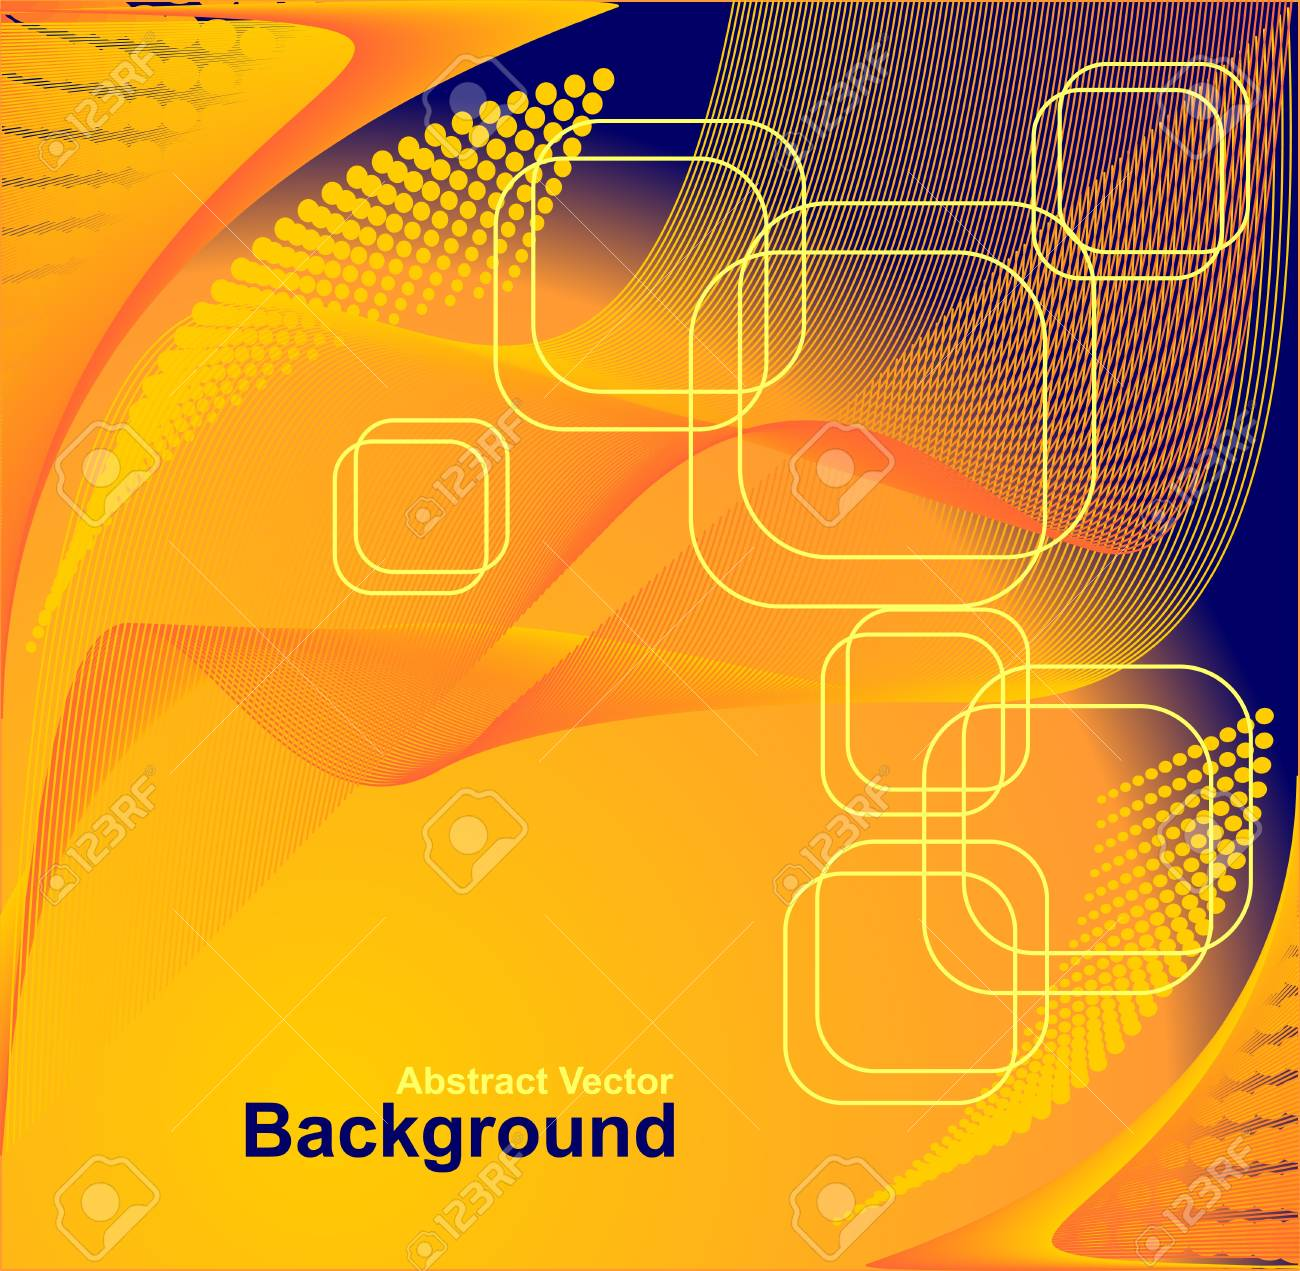 Abstract Background In Orange Dark Blue Colors